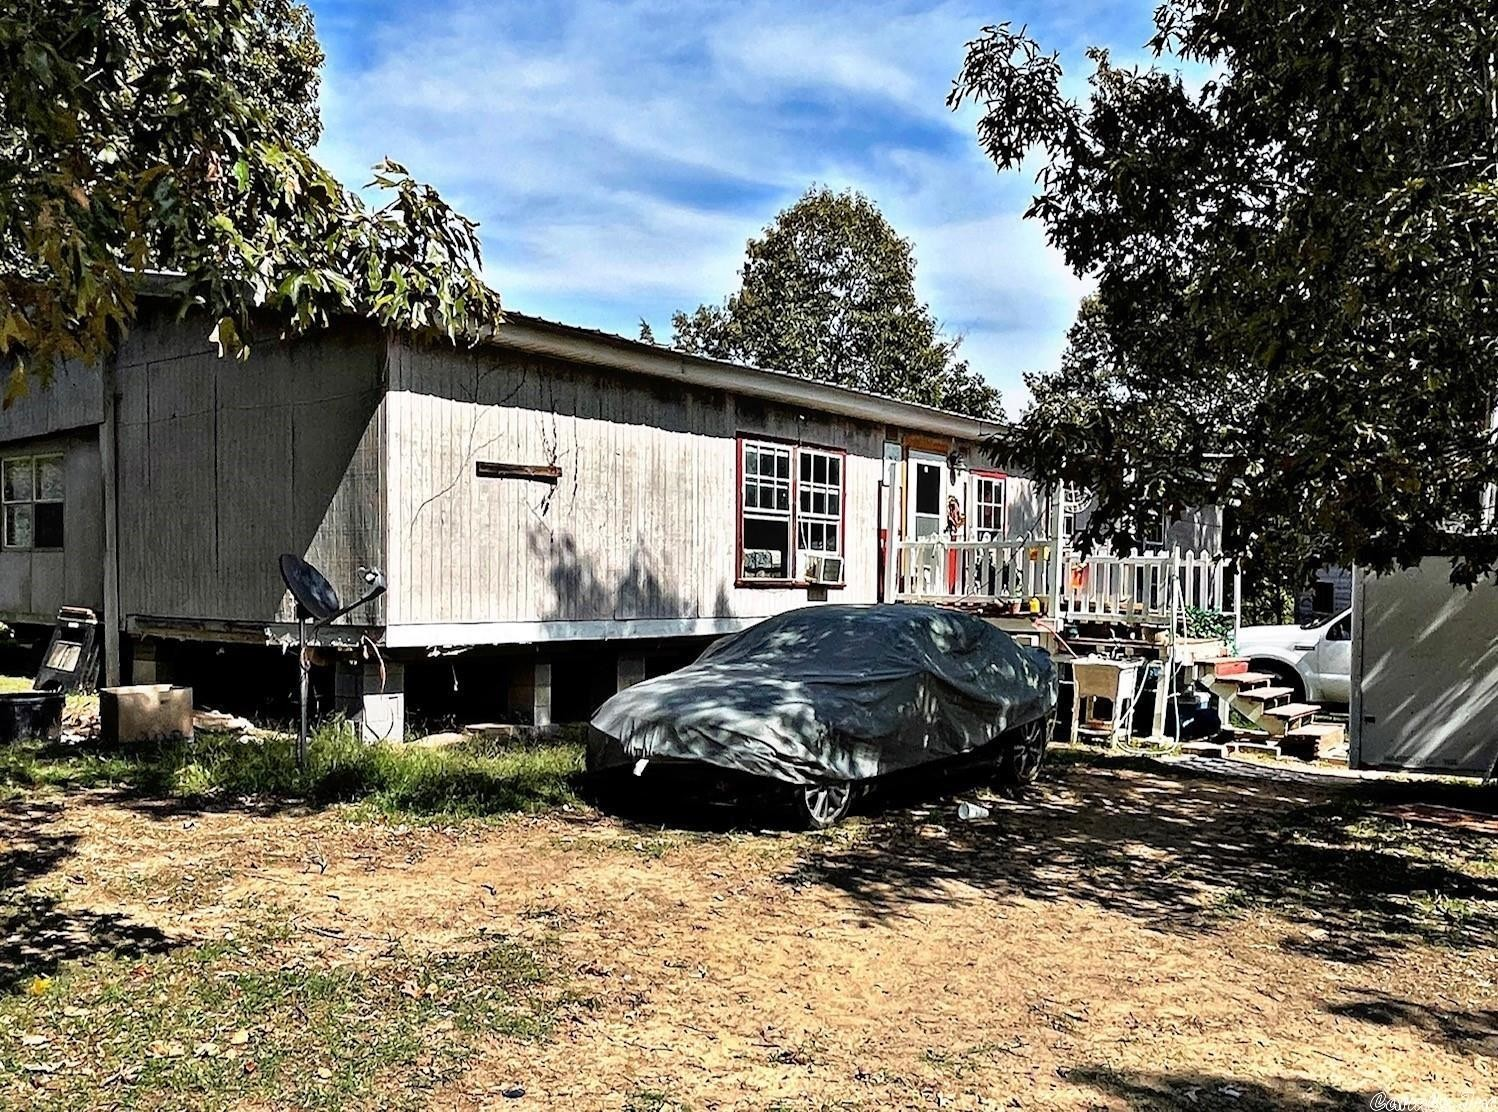 4-Bedroom Mobile Home In Romance